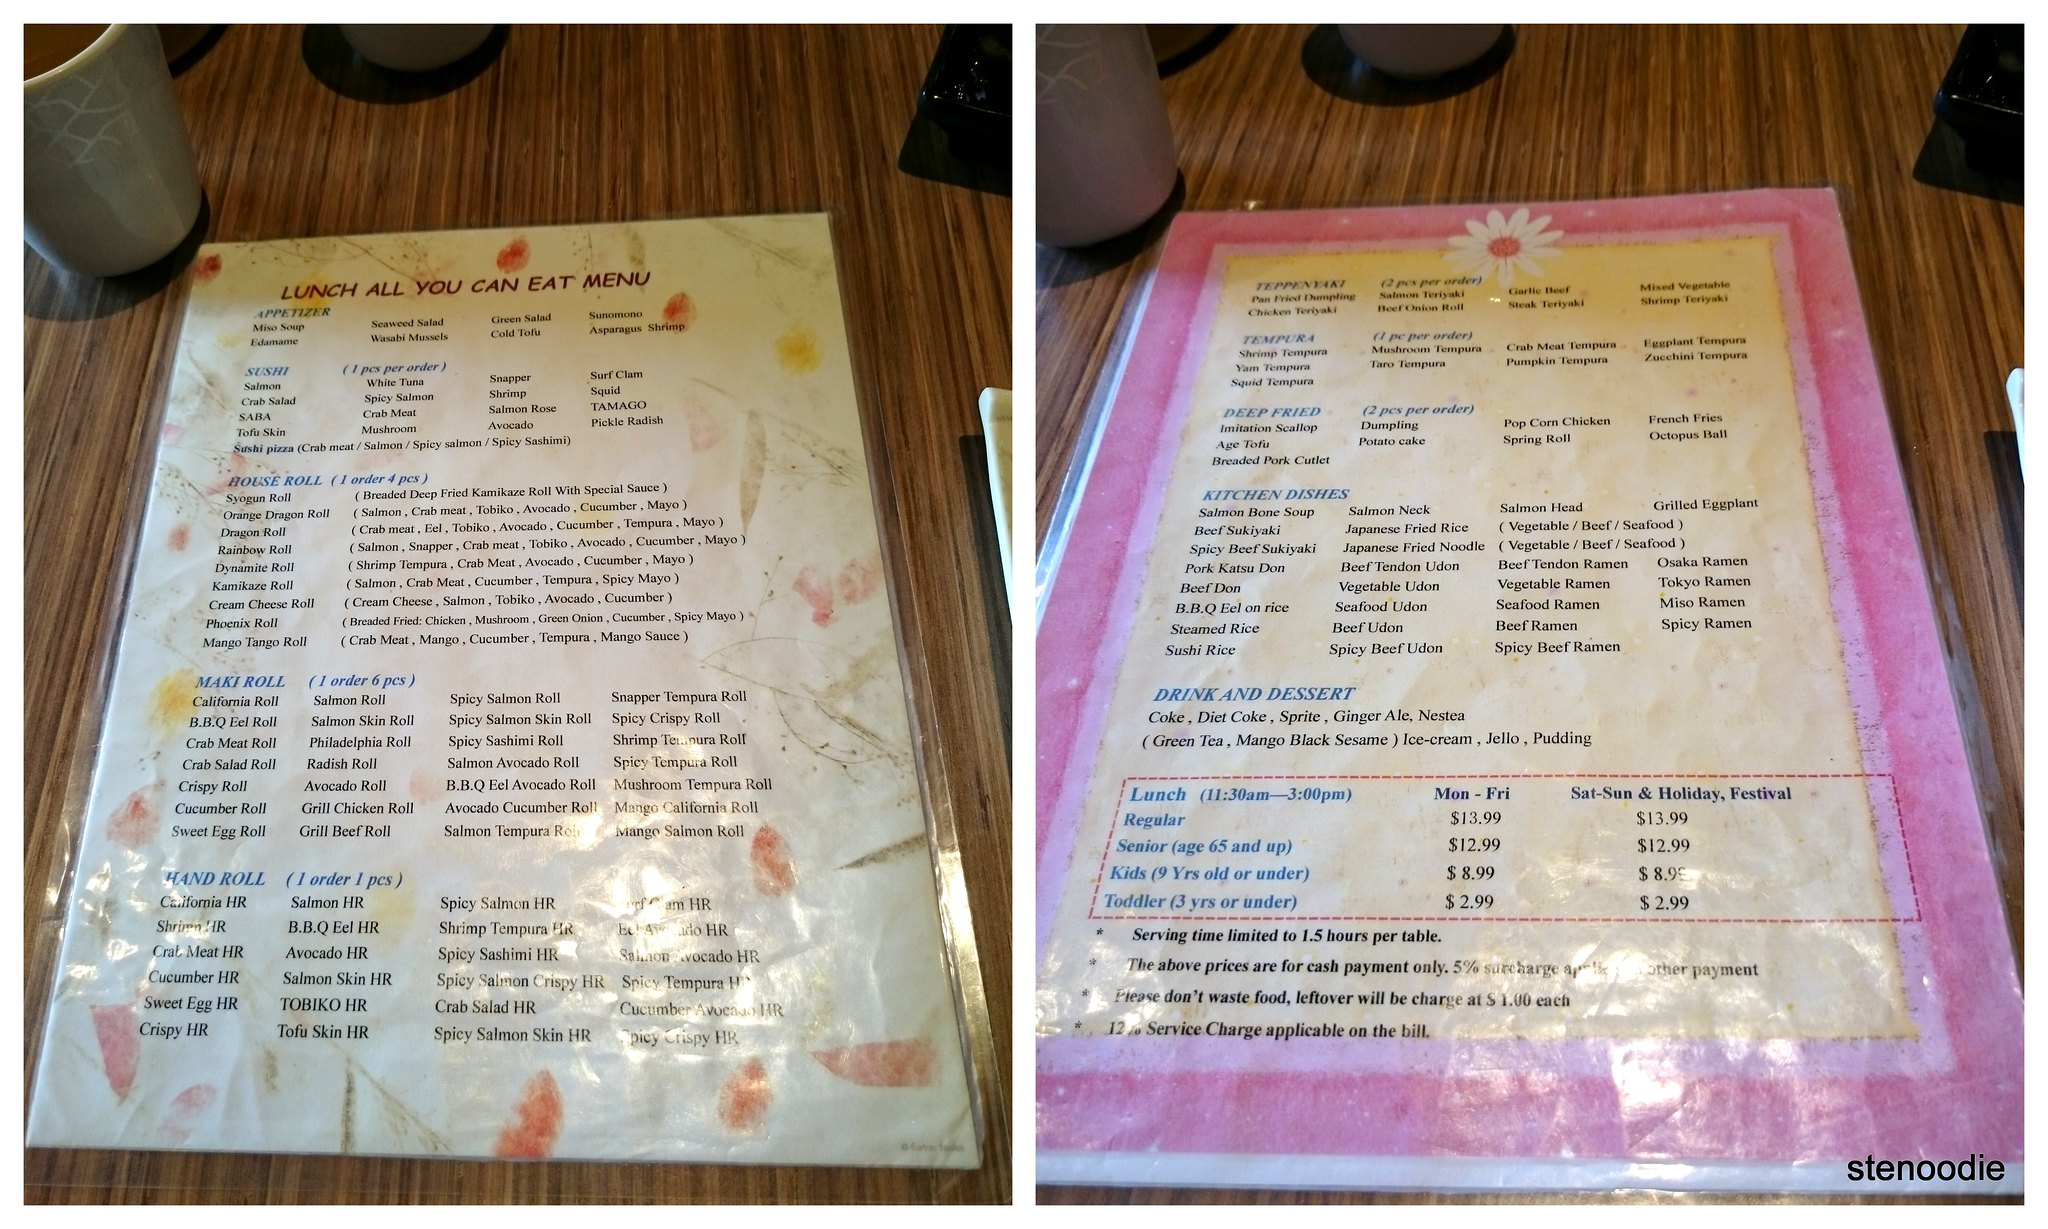 Syogun Sushi all-you-can-eat lunch menu